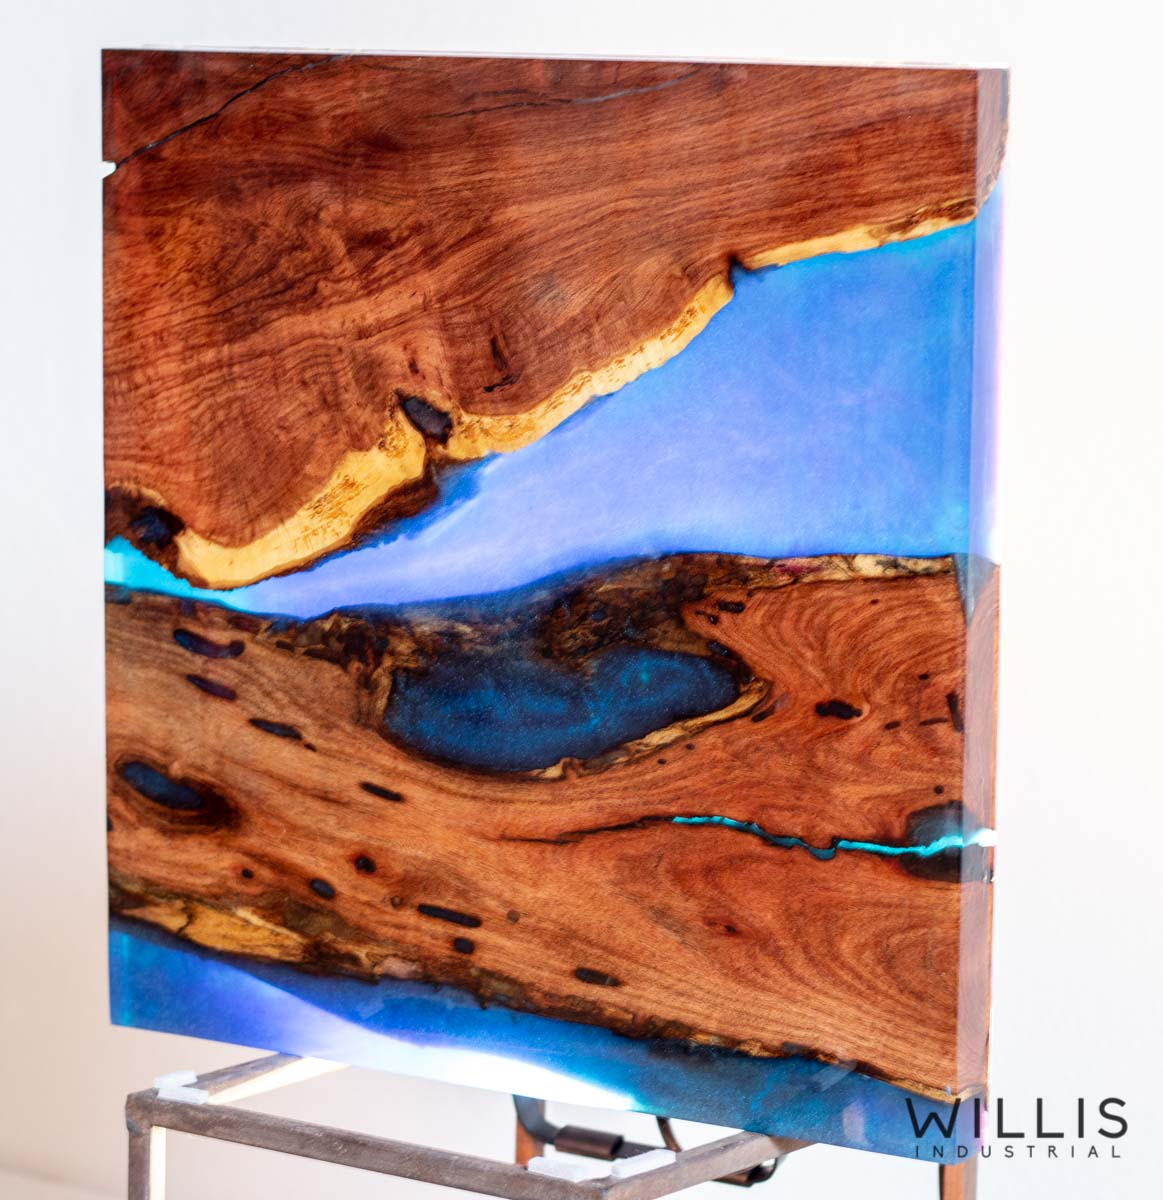 Willis Industrial Furniture | Rustic, Modern Furniture | Mesquite Slab Coffee Table with Azure Blue Metallic Epoxy